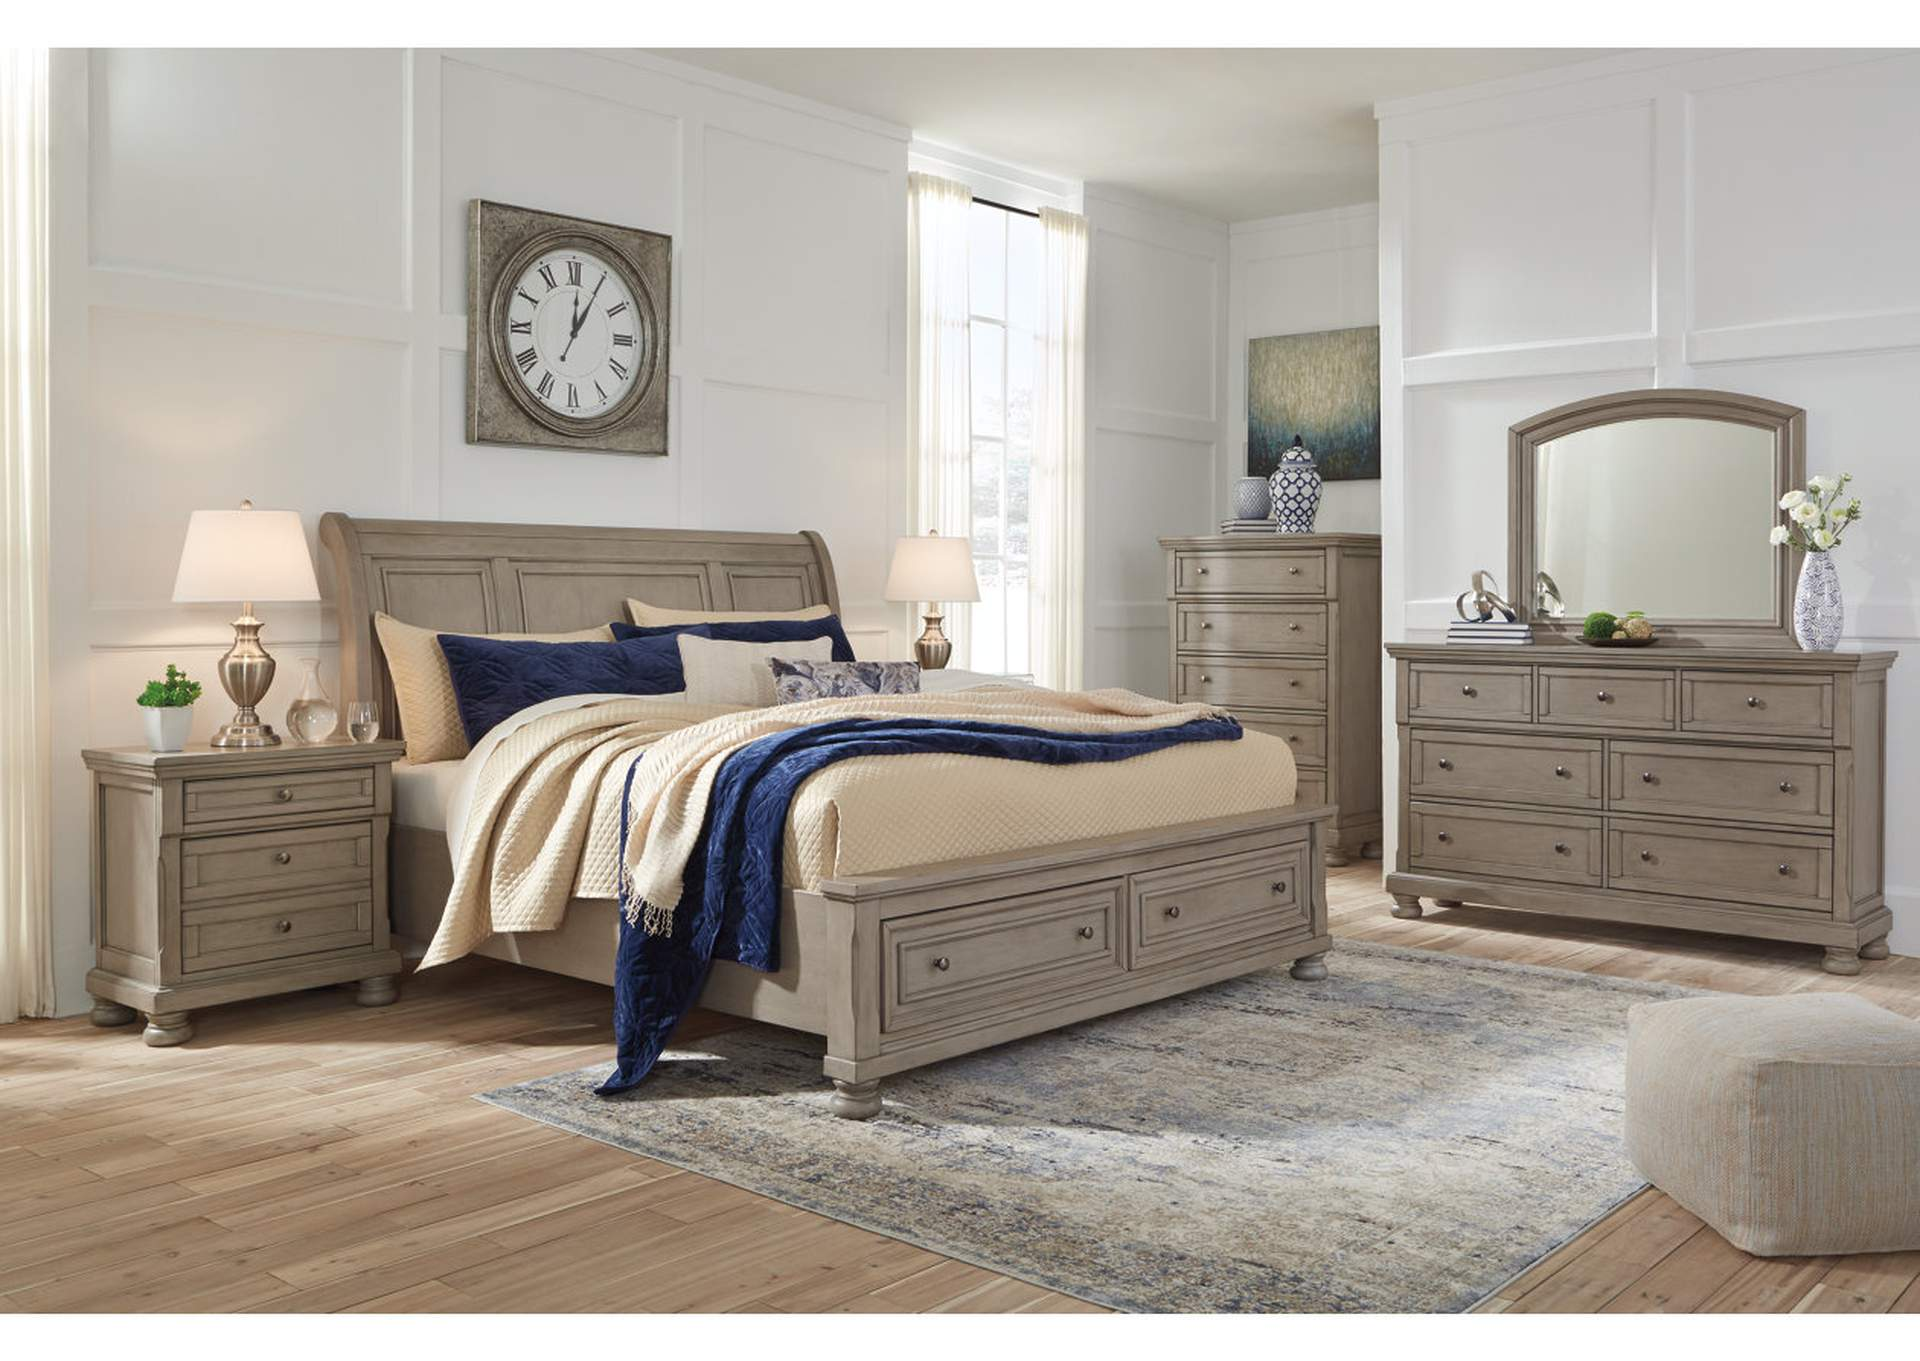 Lettner Light Gray California King Sleigh Storage Bed w/Dresser and Mirror,Signature Design By Ashley